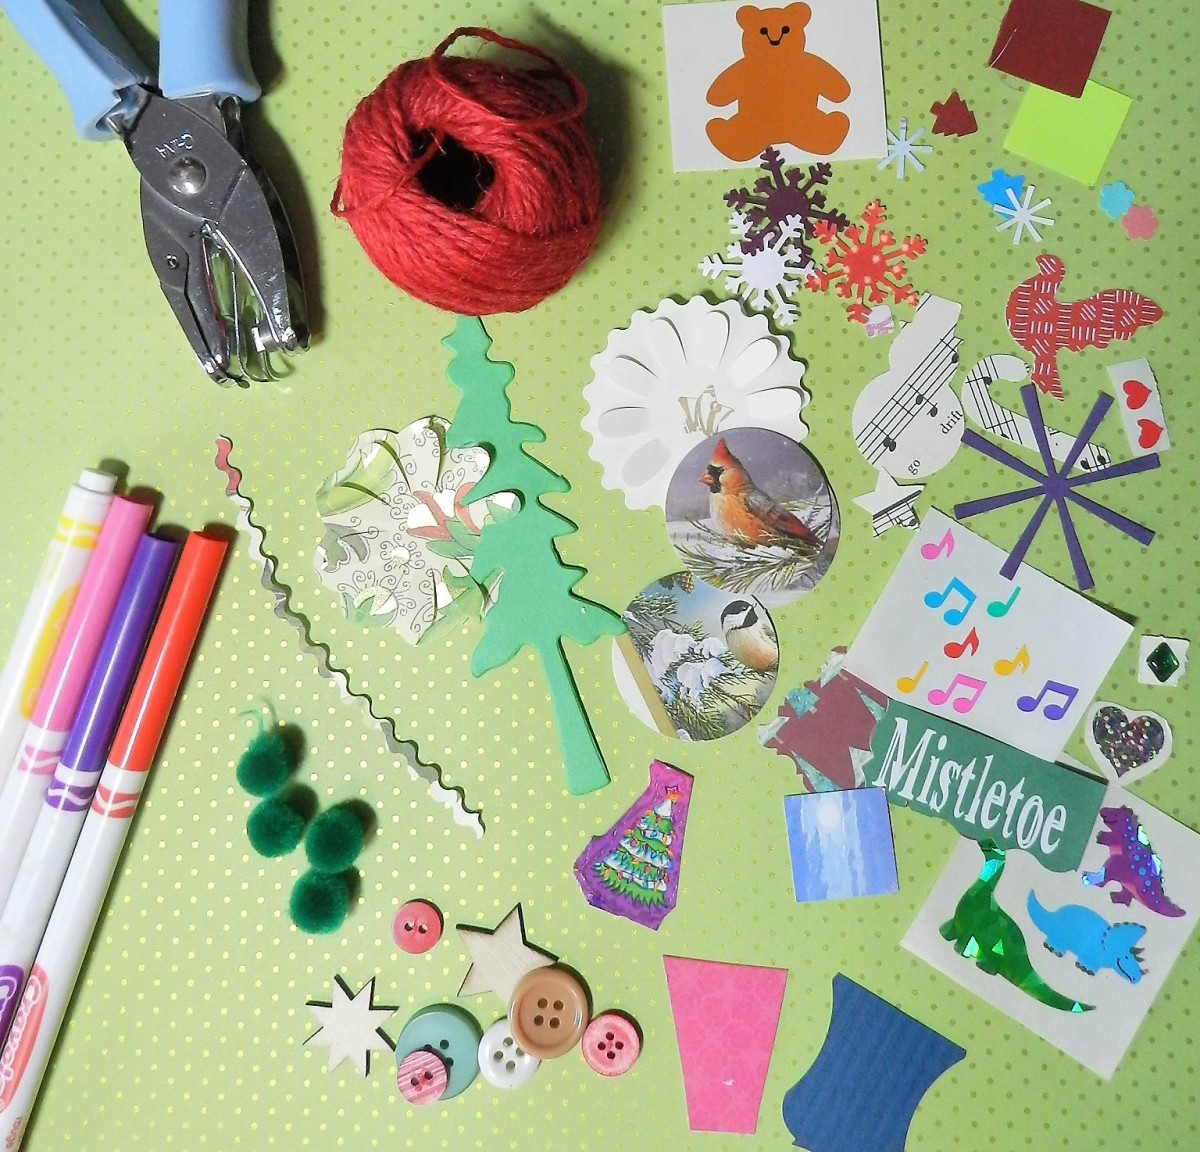 Gather together embellishments, such as, stickers, pens, die cuts and punched Christmas motifs.